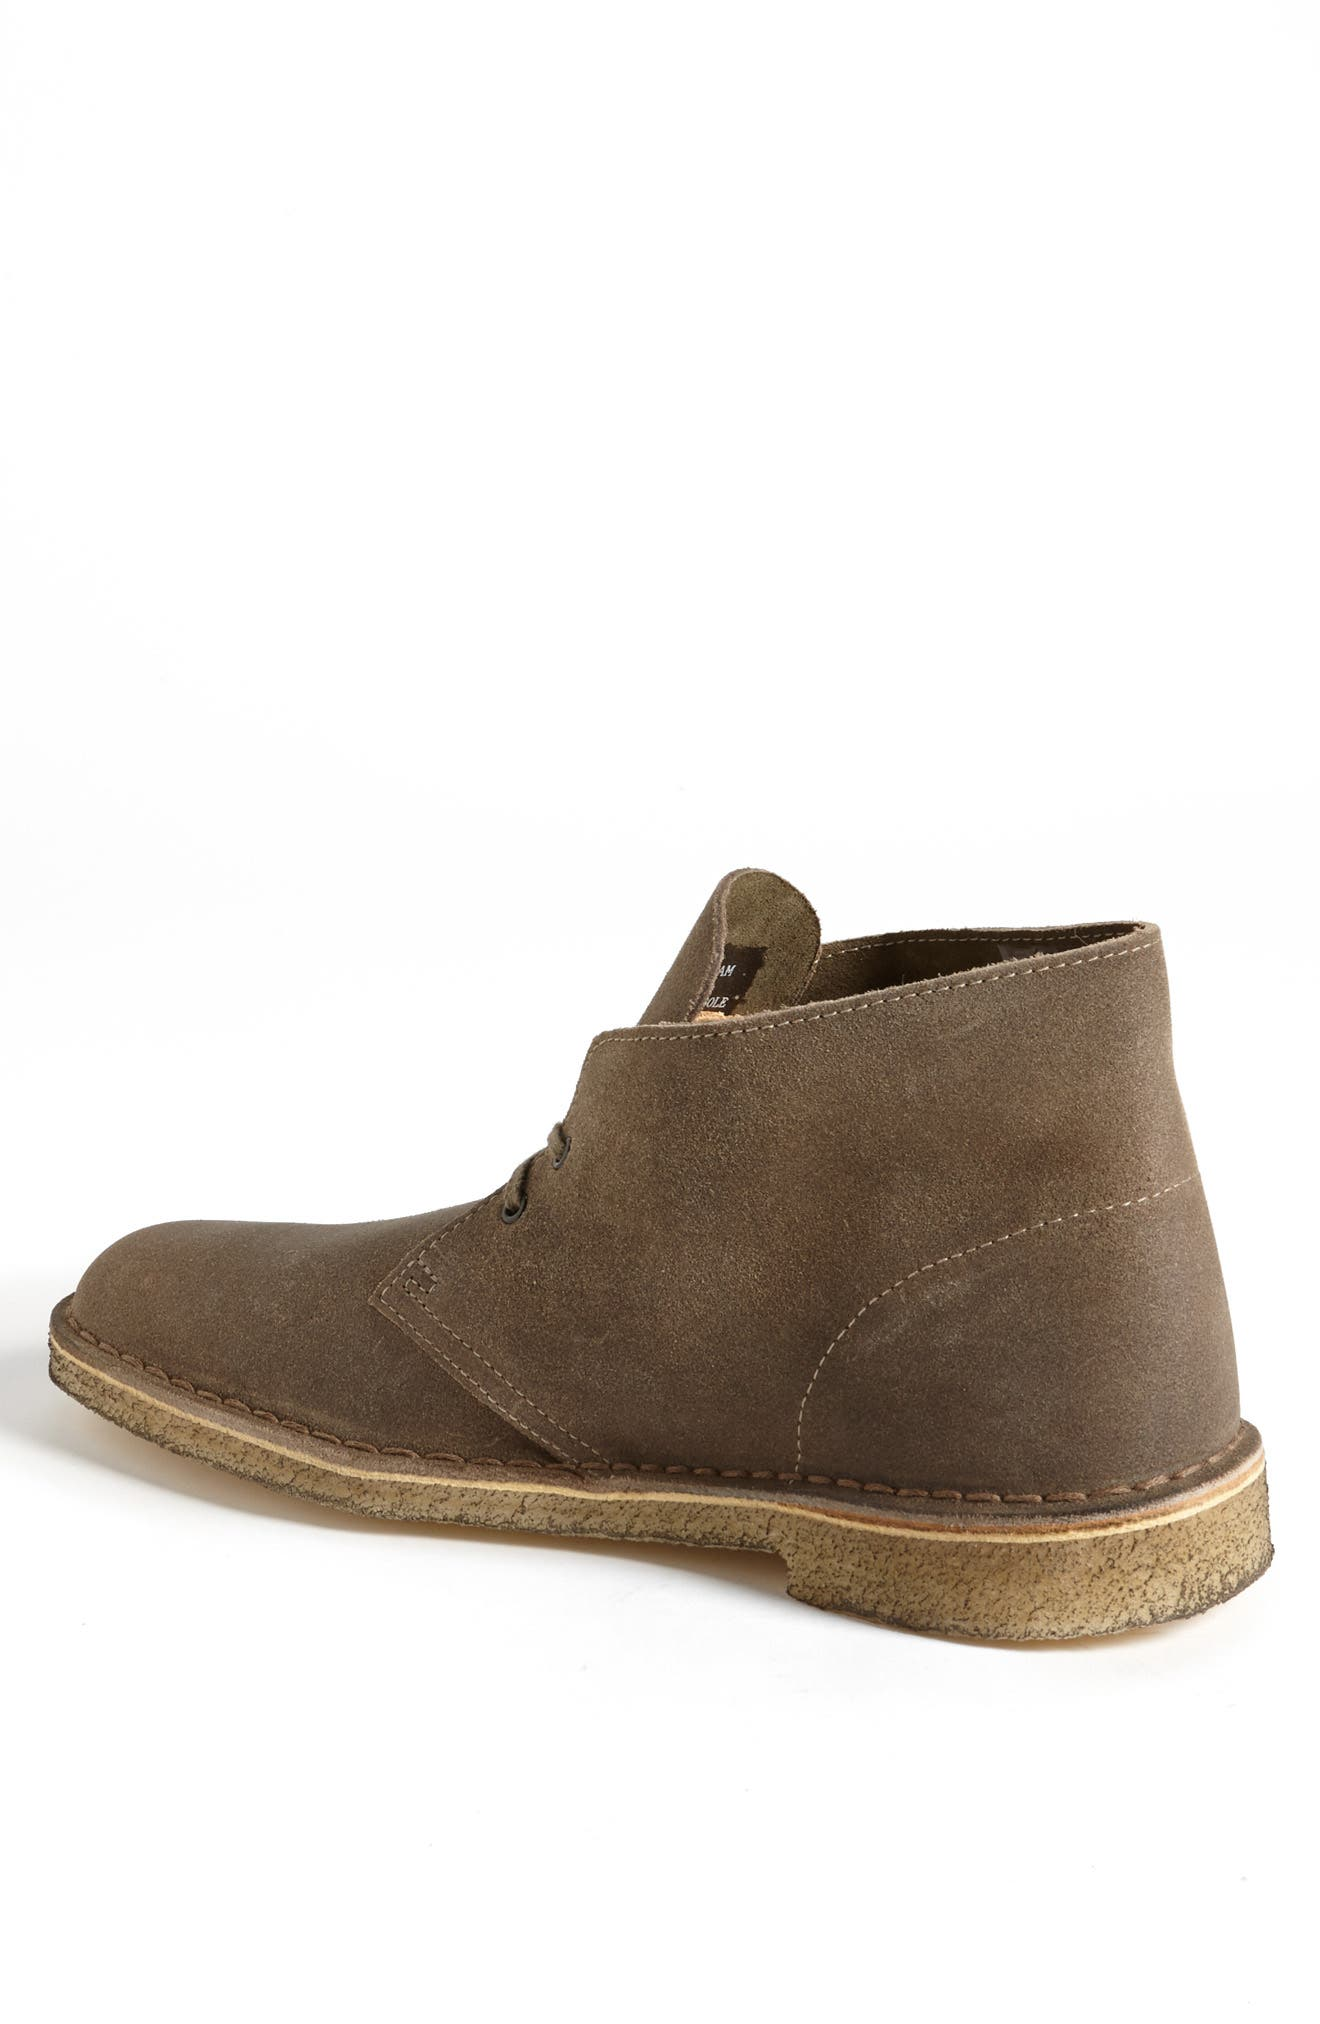 'Desert' Boot,                             Alternate thumbnail 3, color,                             TAUPE DISTRESSED SUEDE